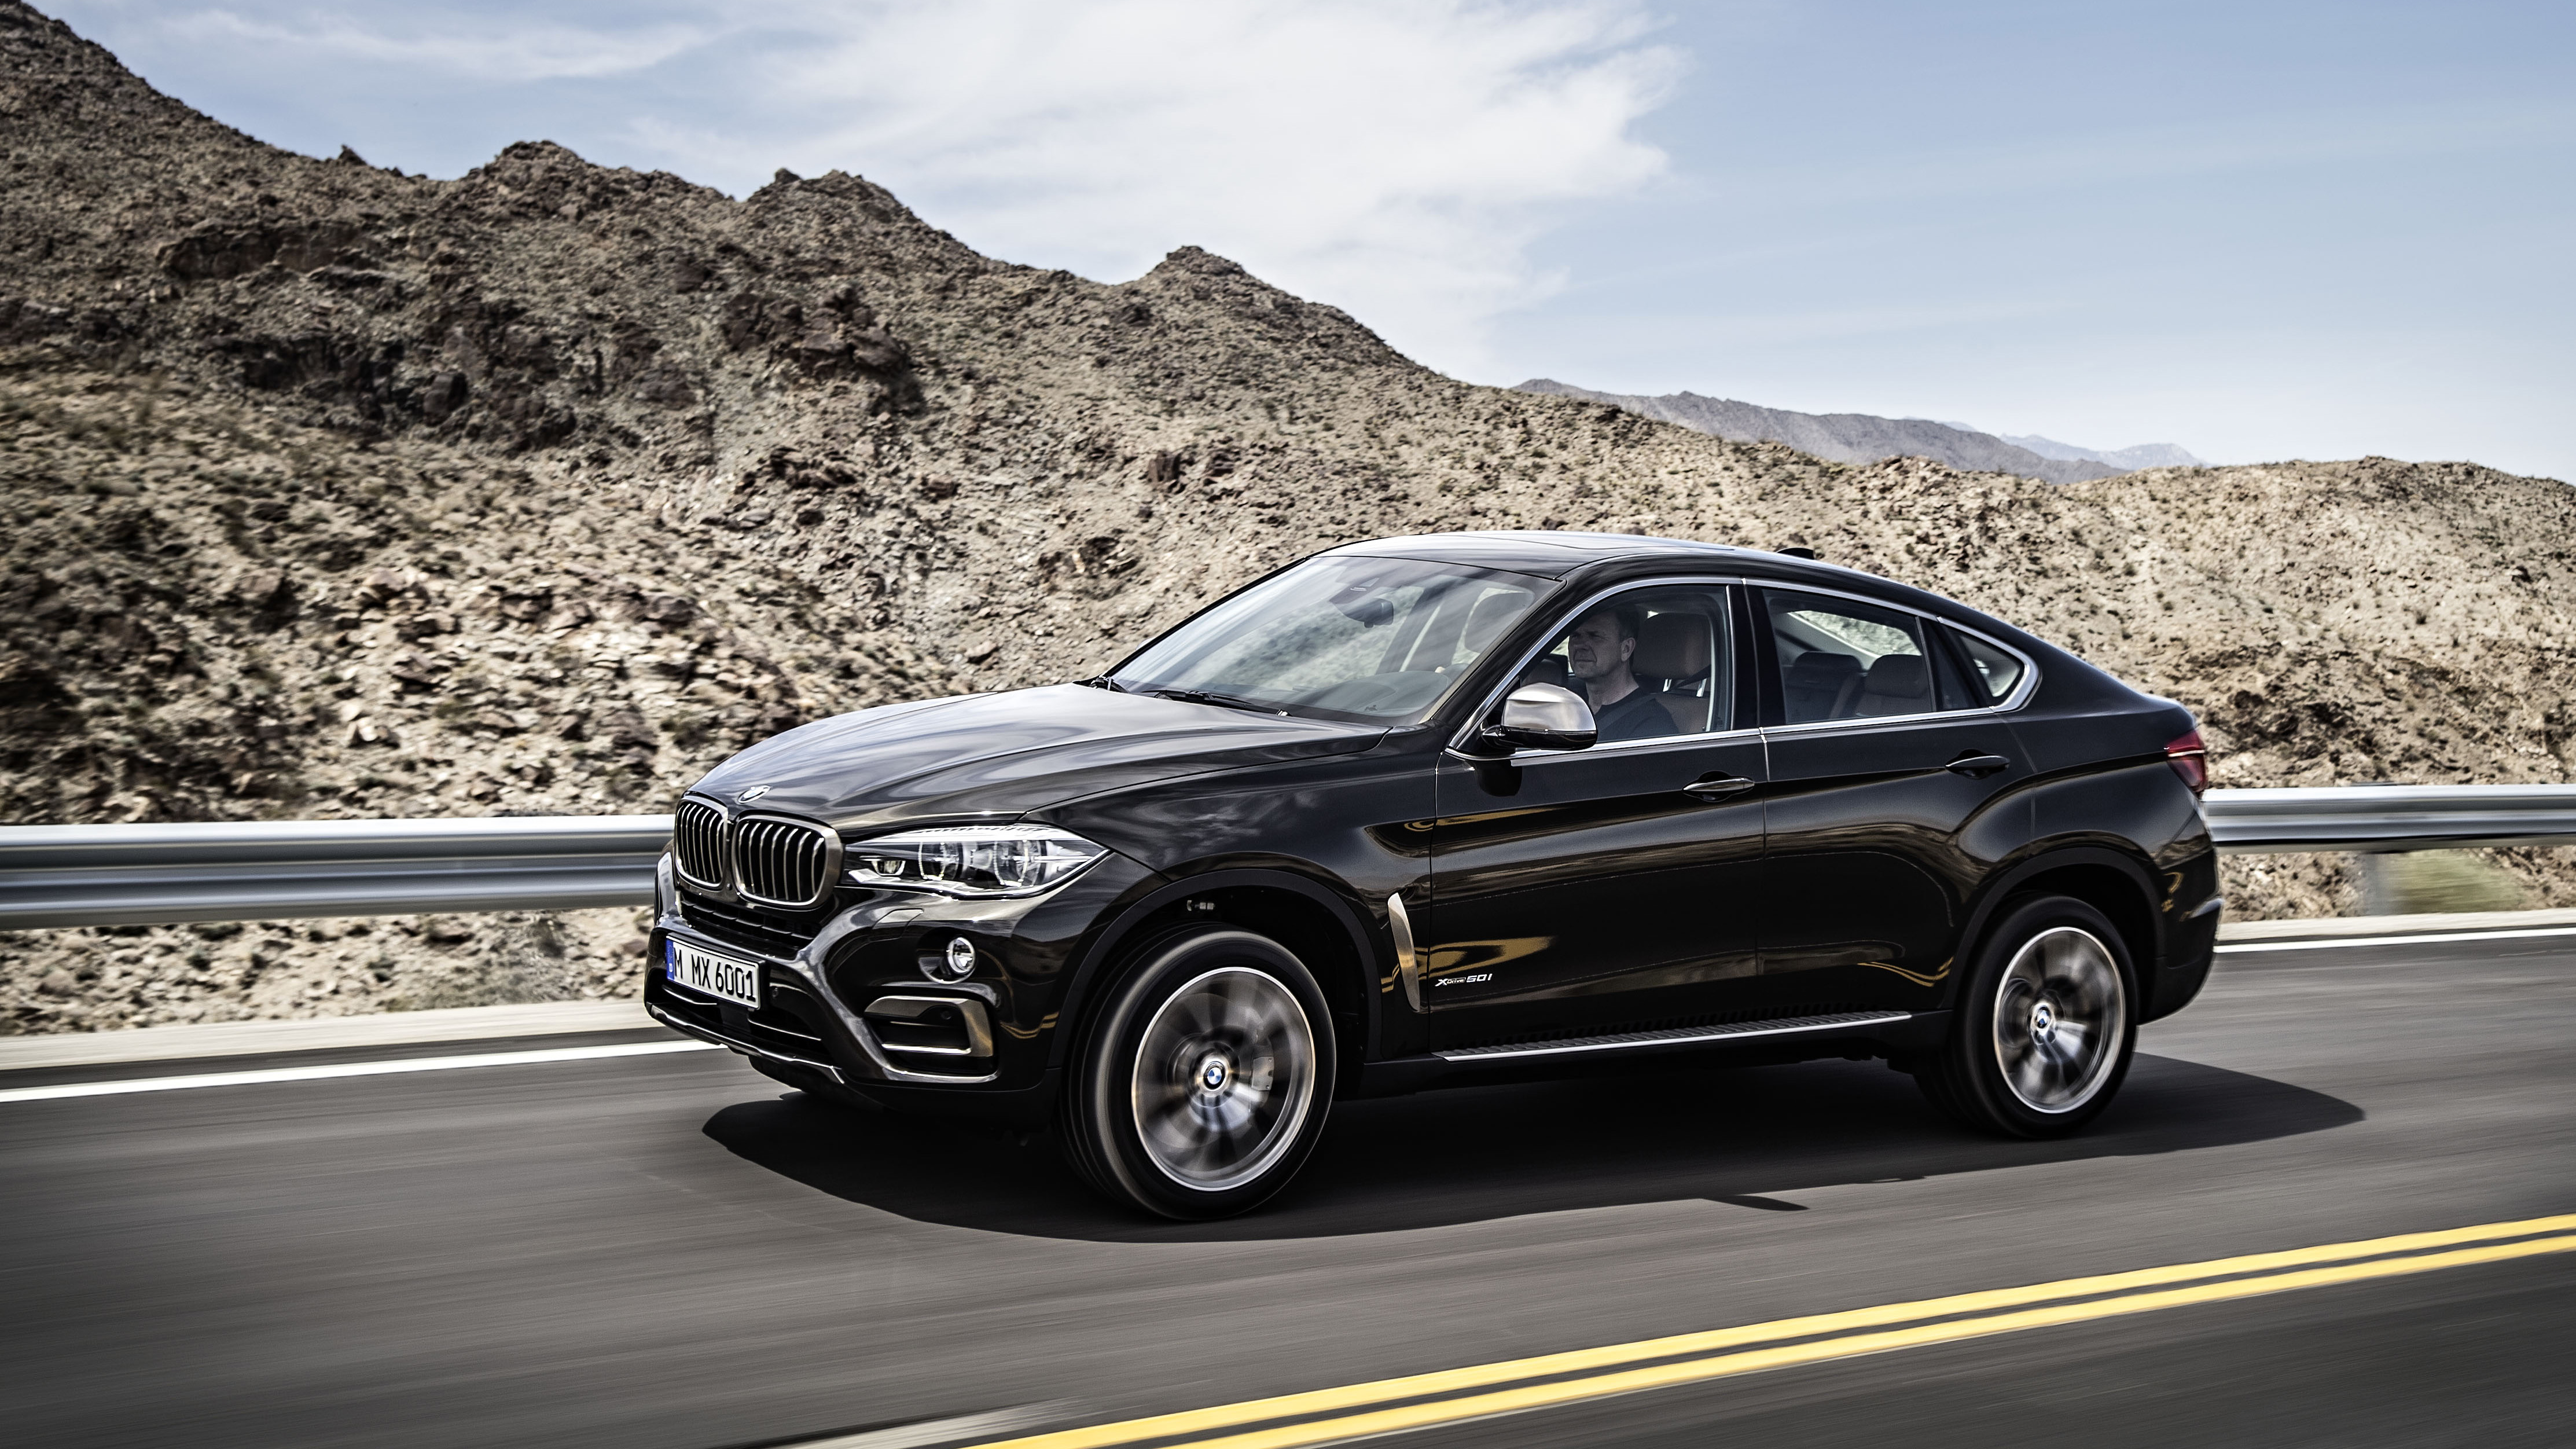 Bmw X6 Review And Buying Guide Best Deals And Prices